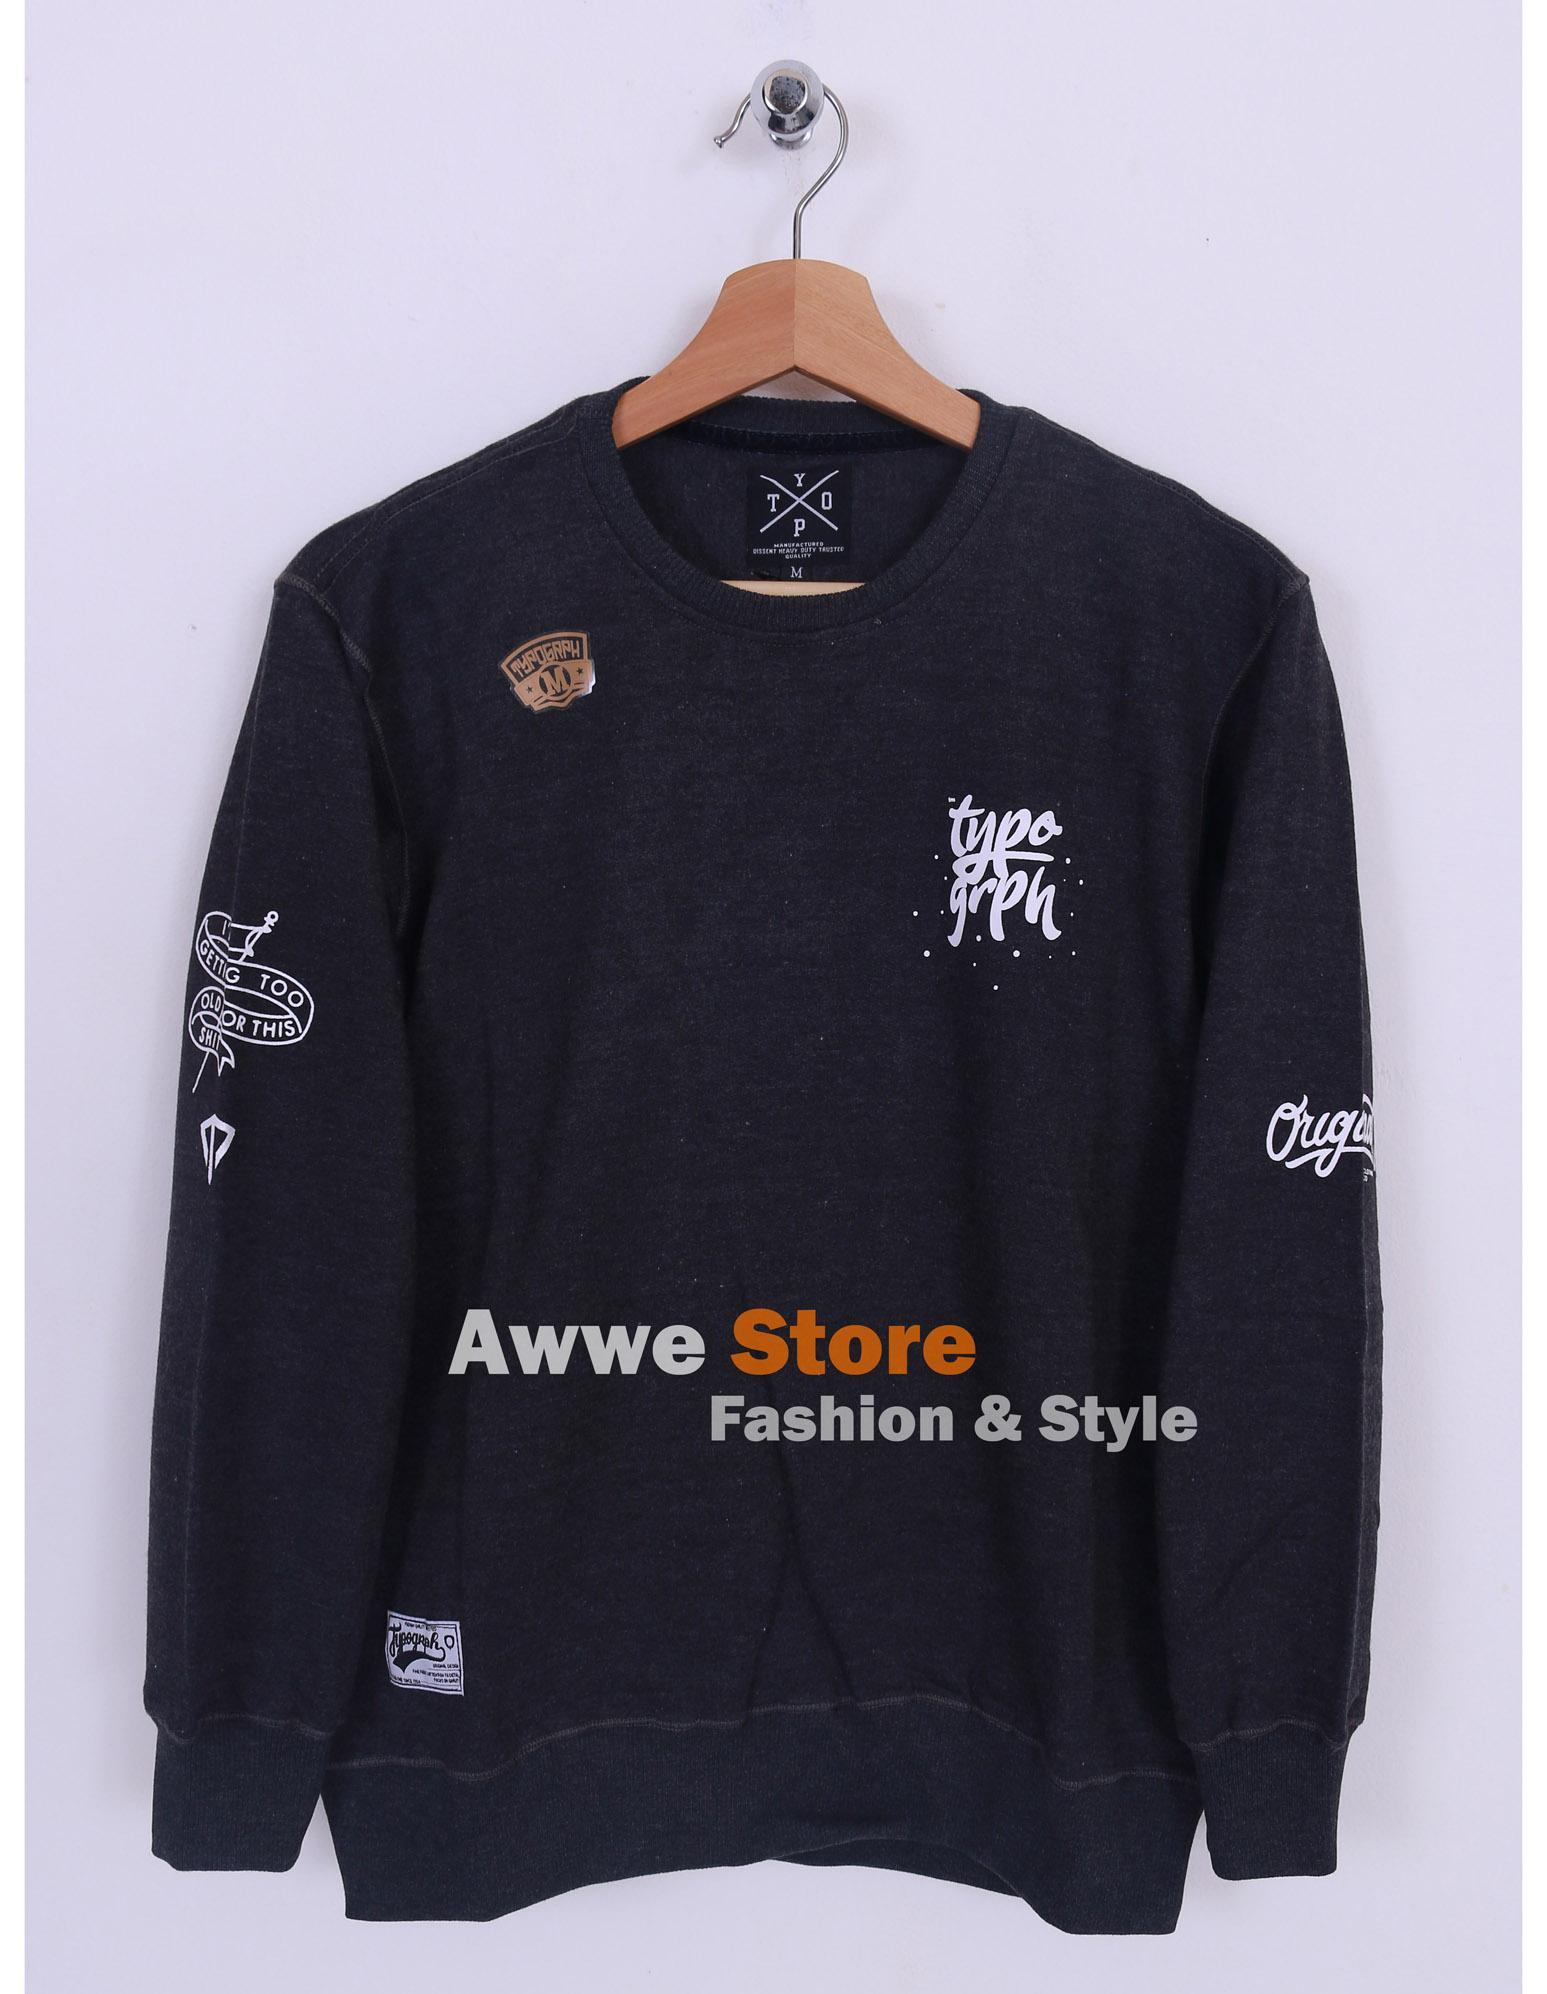 Awwe Store Sweater termurah / sweater pria / sweater distro / sweater tanah abang / sweater fashion / jaket / sweater thypograph 10